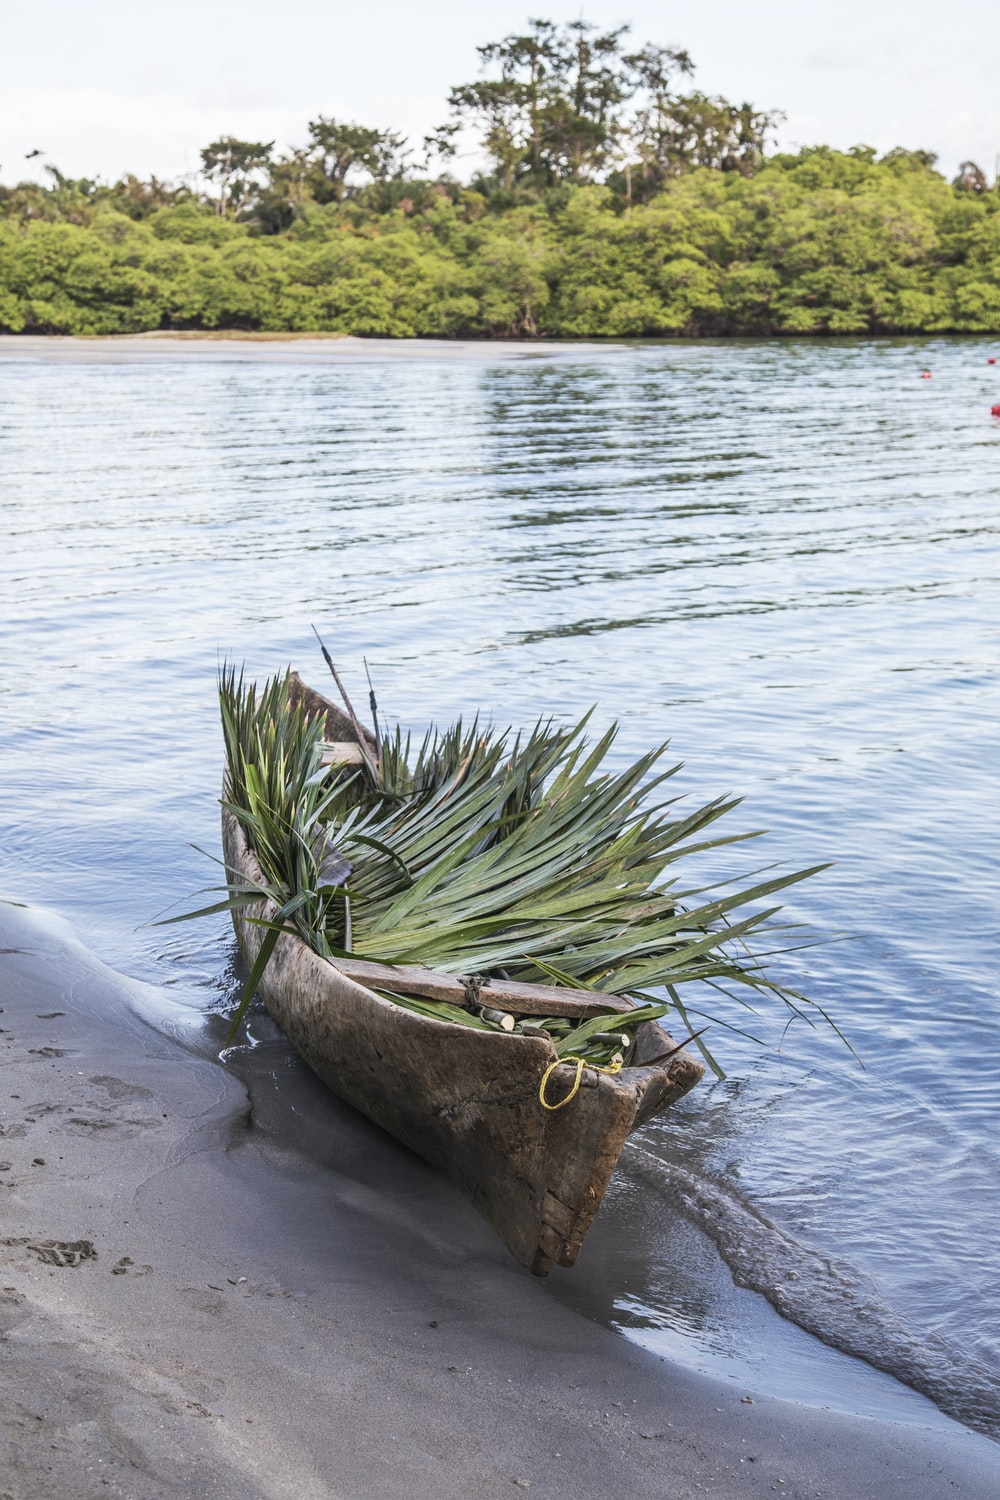 green and brown canoe on shore during daytime